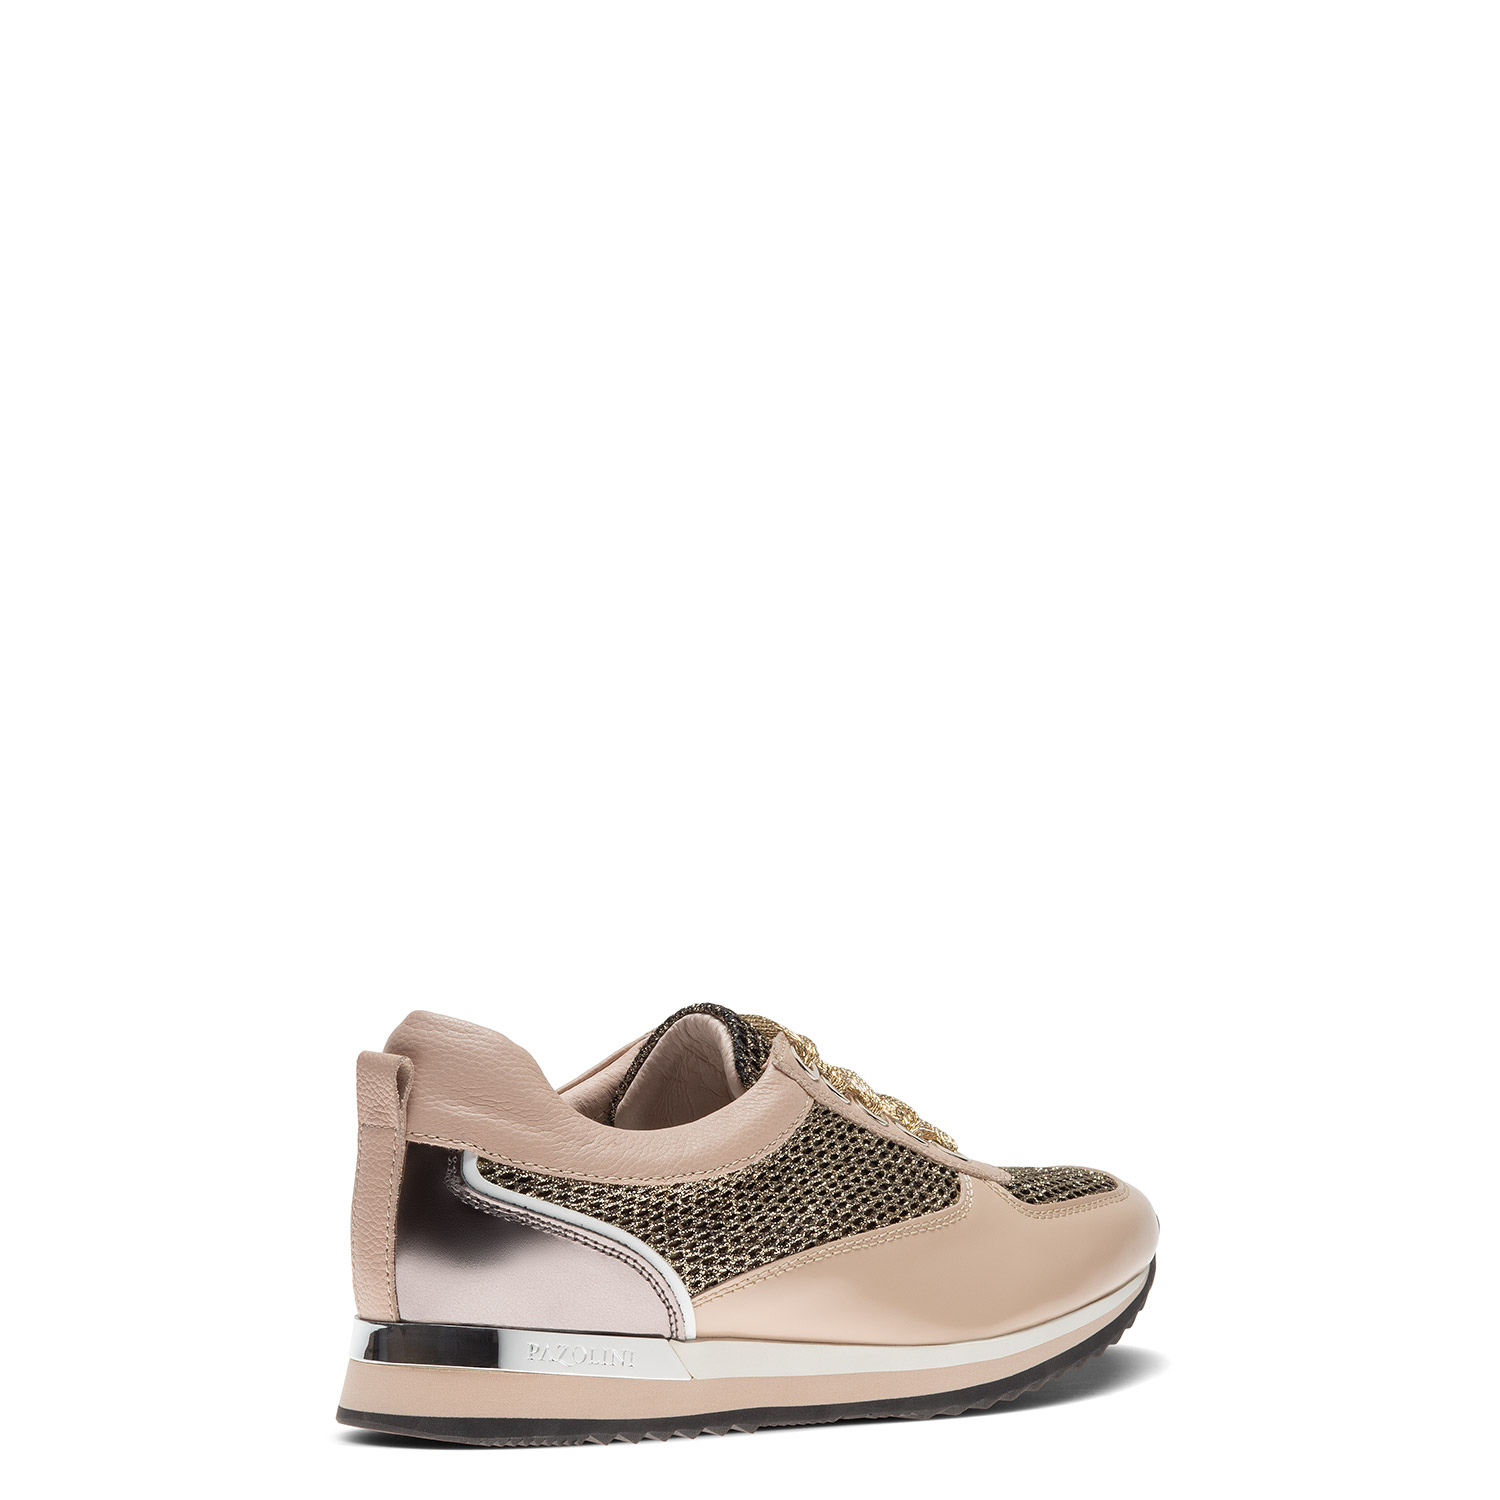 SNEAKERS PAZOLINI JH-END28-19